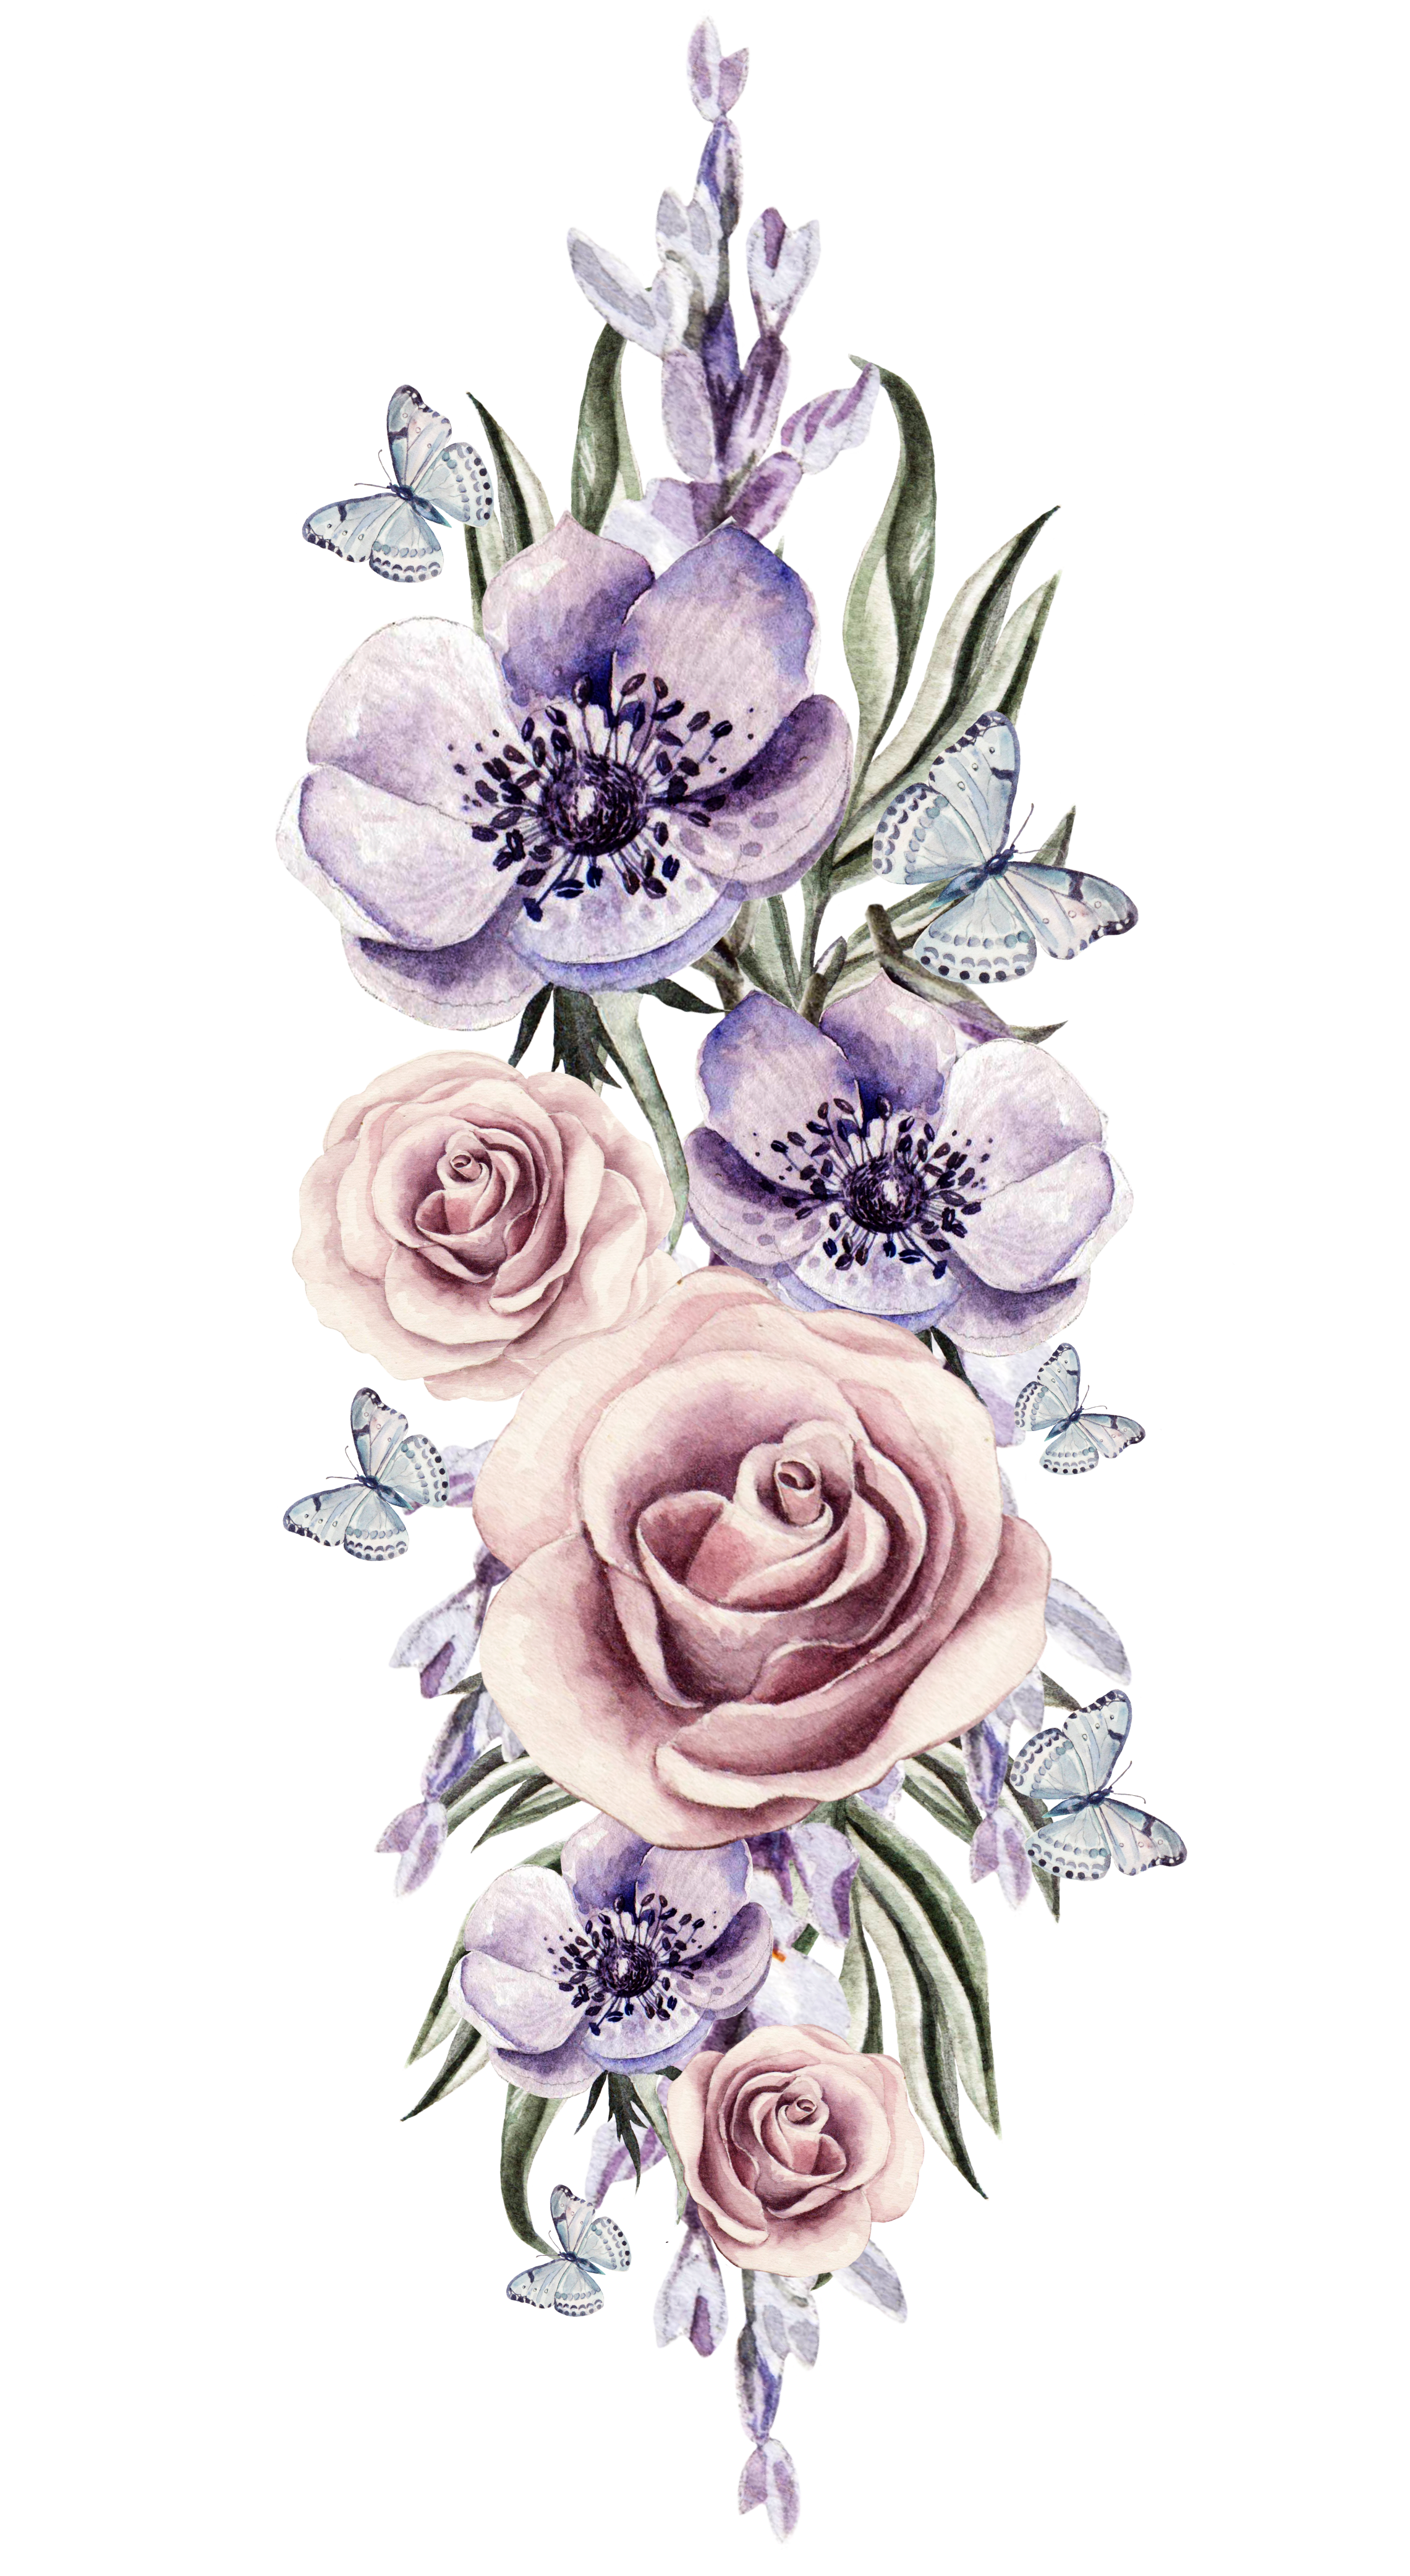 b8498acf0 Pngtree provides you with 2,172 free transparent Watercolor Flowers png,  vector, clipart images and